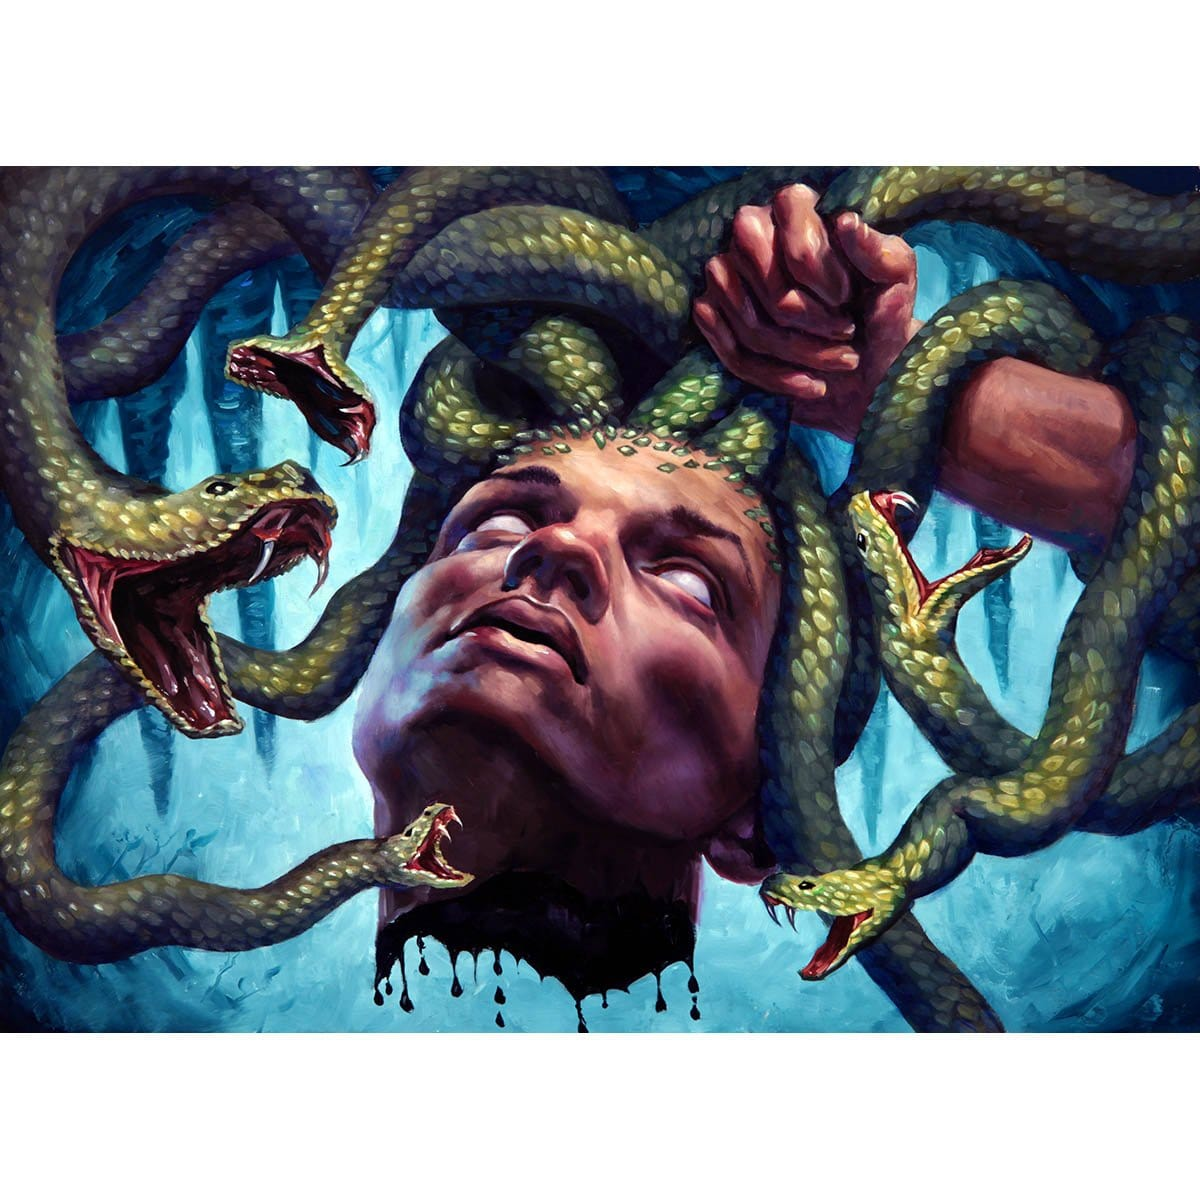 Gorgon's Head Print - Print - Original Magic Art - Accessories for Magic the Gathering and other card games